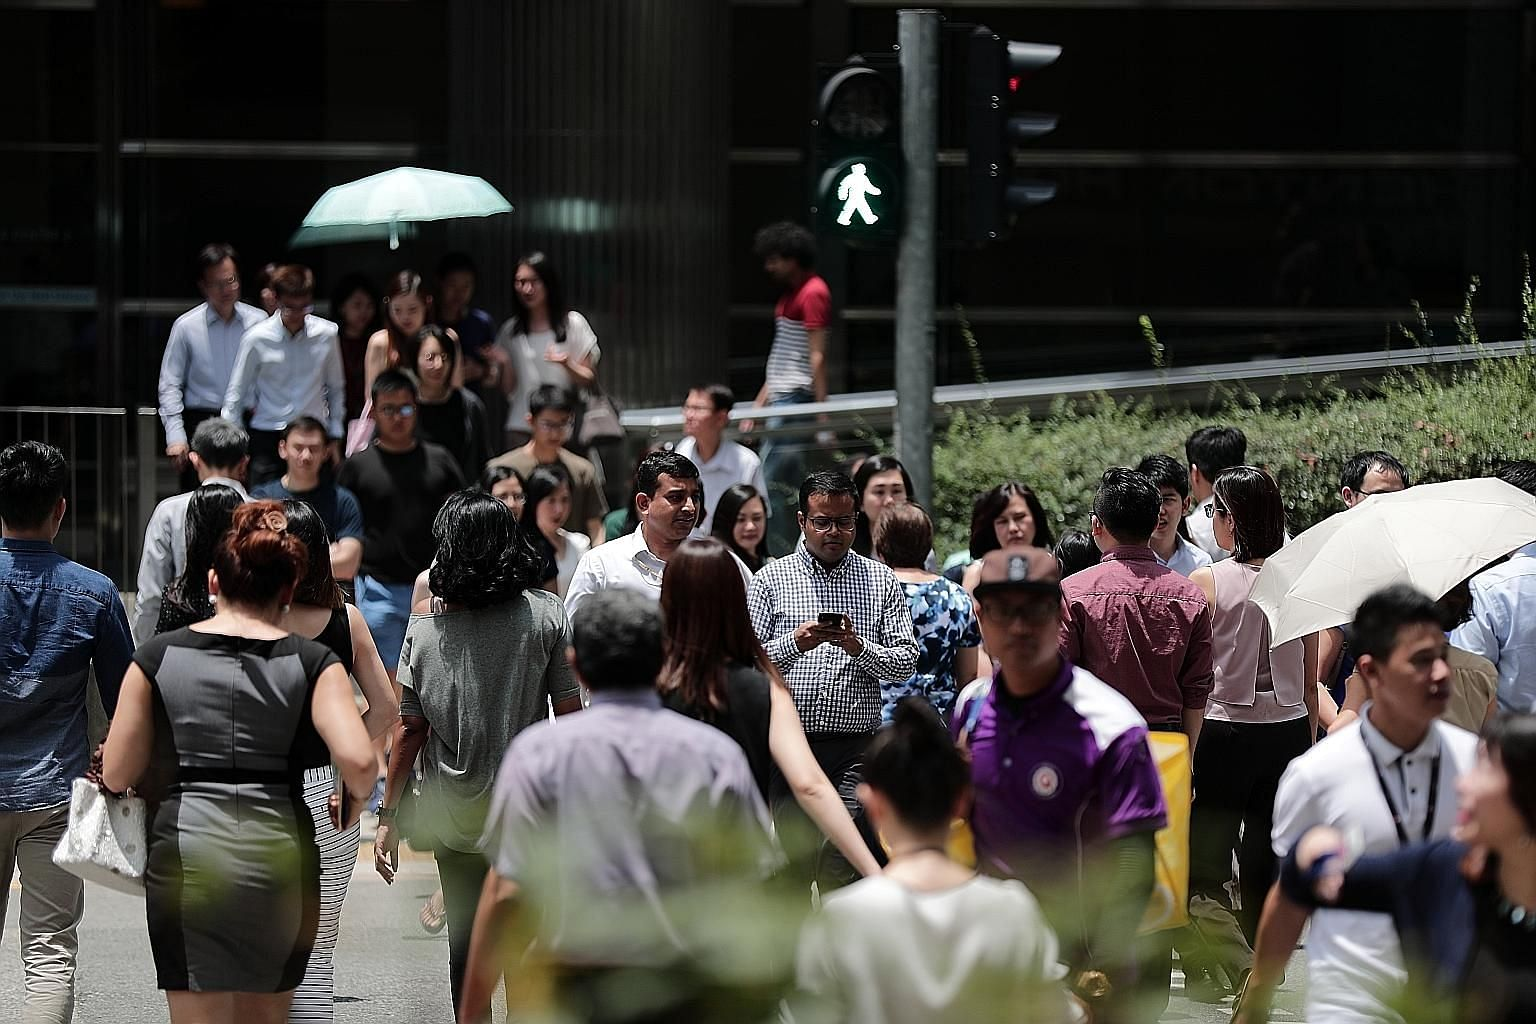 There were 2.33 million residents in the labour force as of June last year, comprising 1.97 million Singaporeans and 360,000 permanent residents. The Ministry of Manpower said in its report that as citizens consistently make up about 85 per cent of t